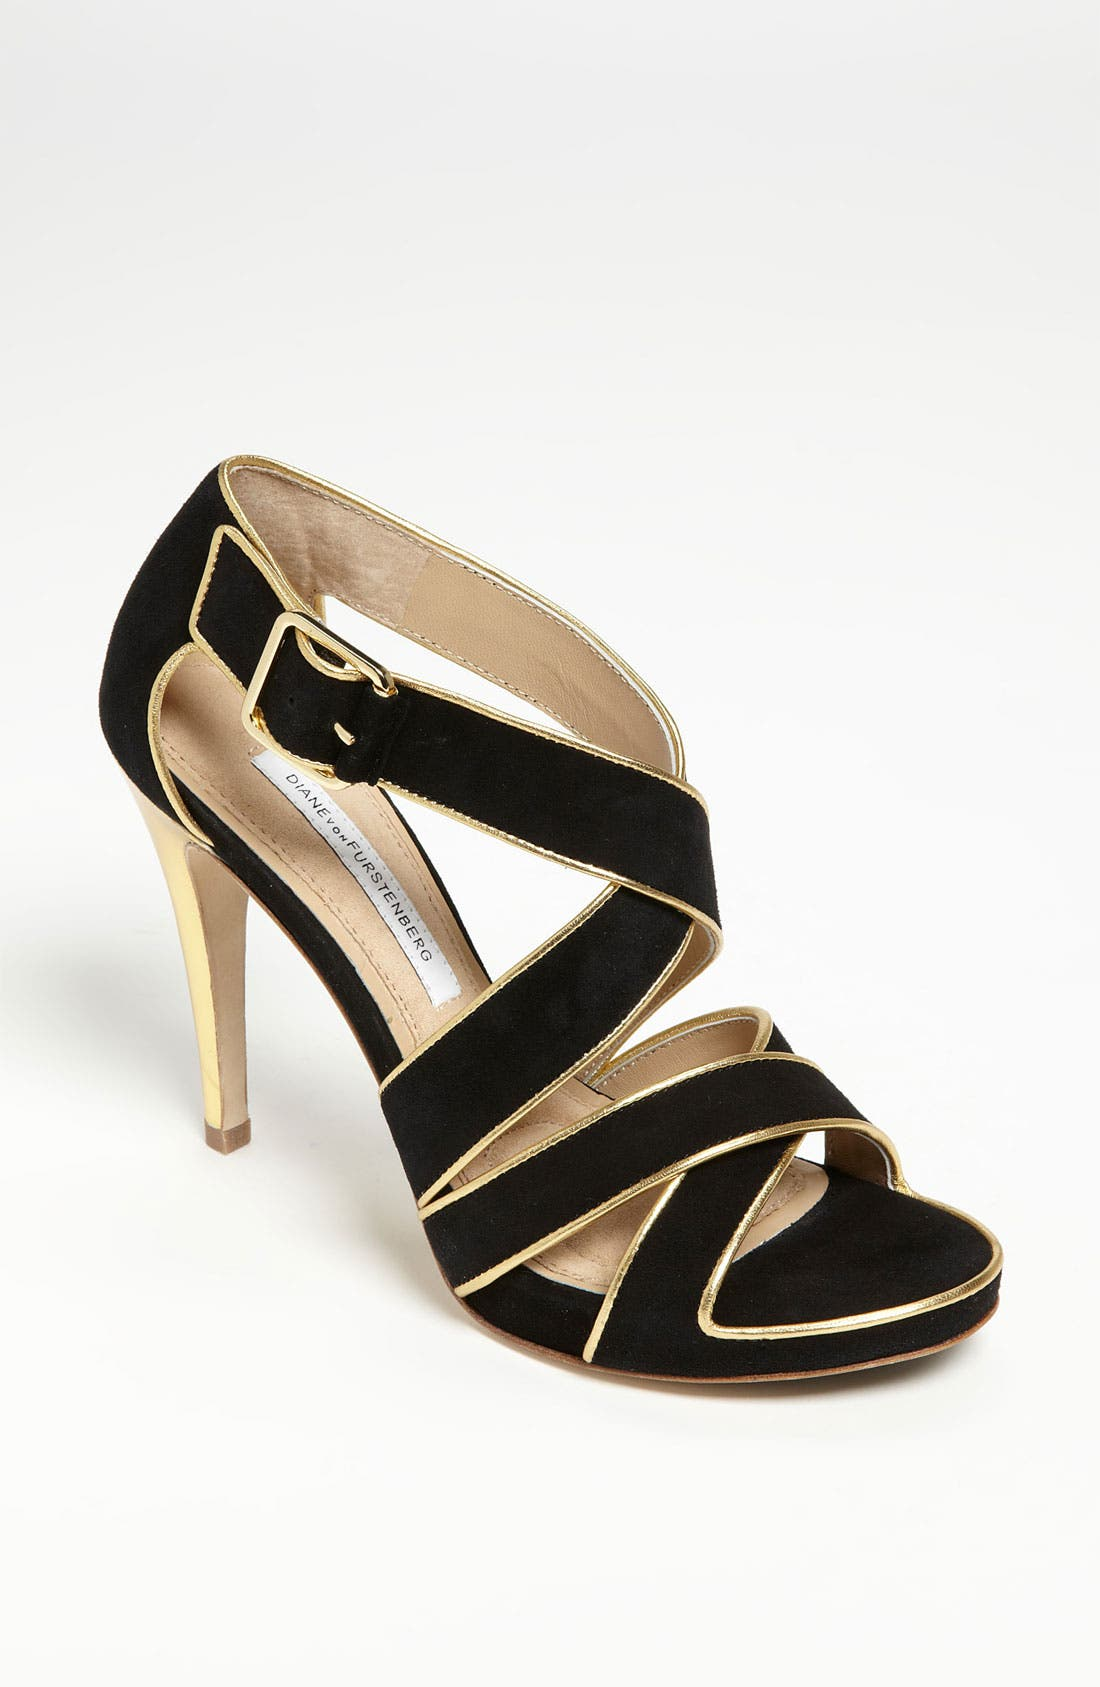 Alternate Image 1 Selected - Diane von Furstenberg 'Jodi' Sandal (Online Only)